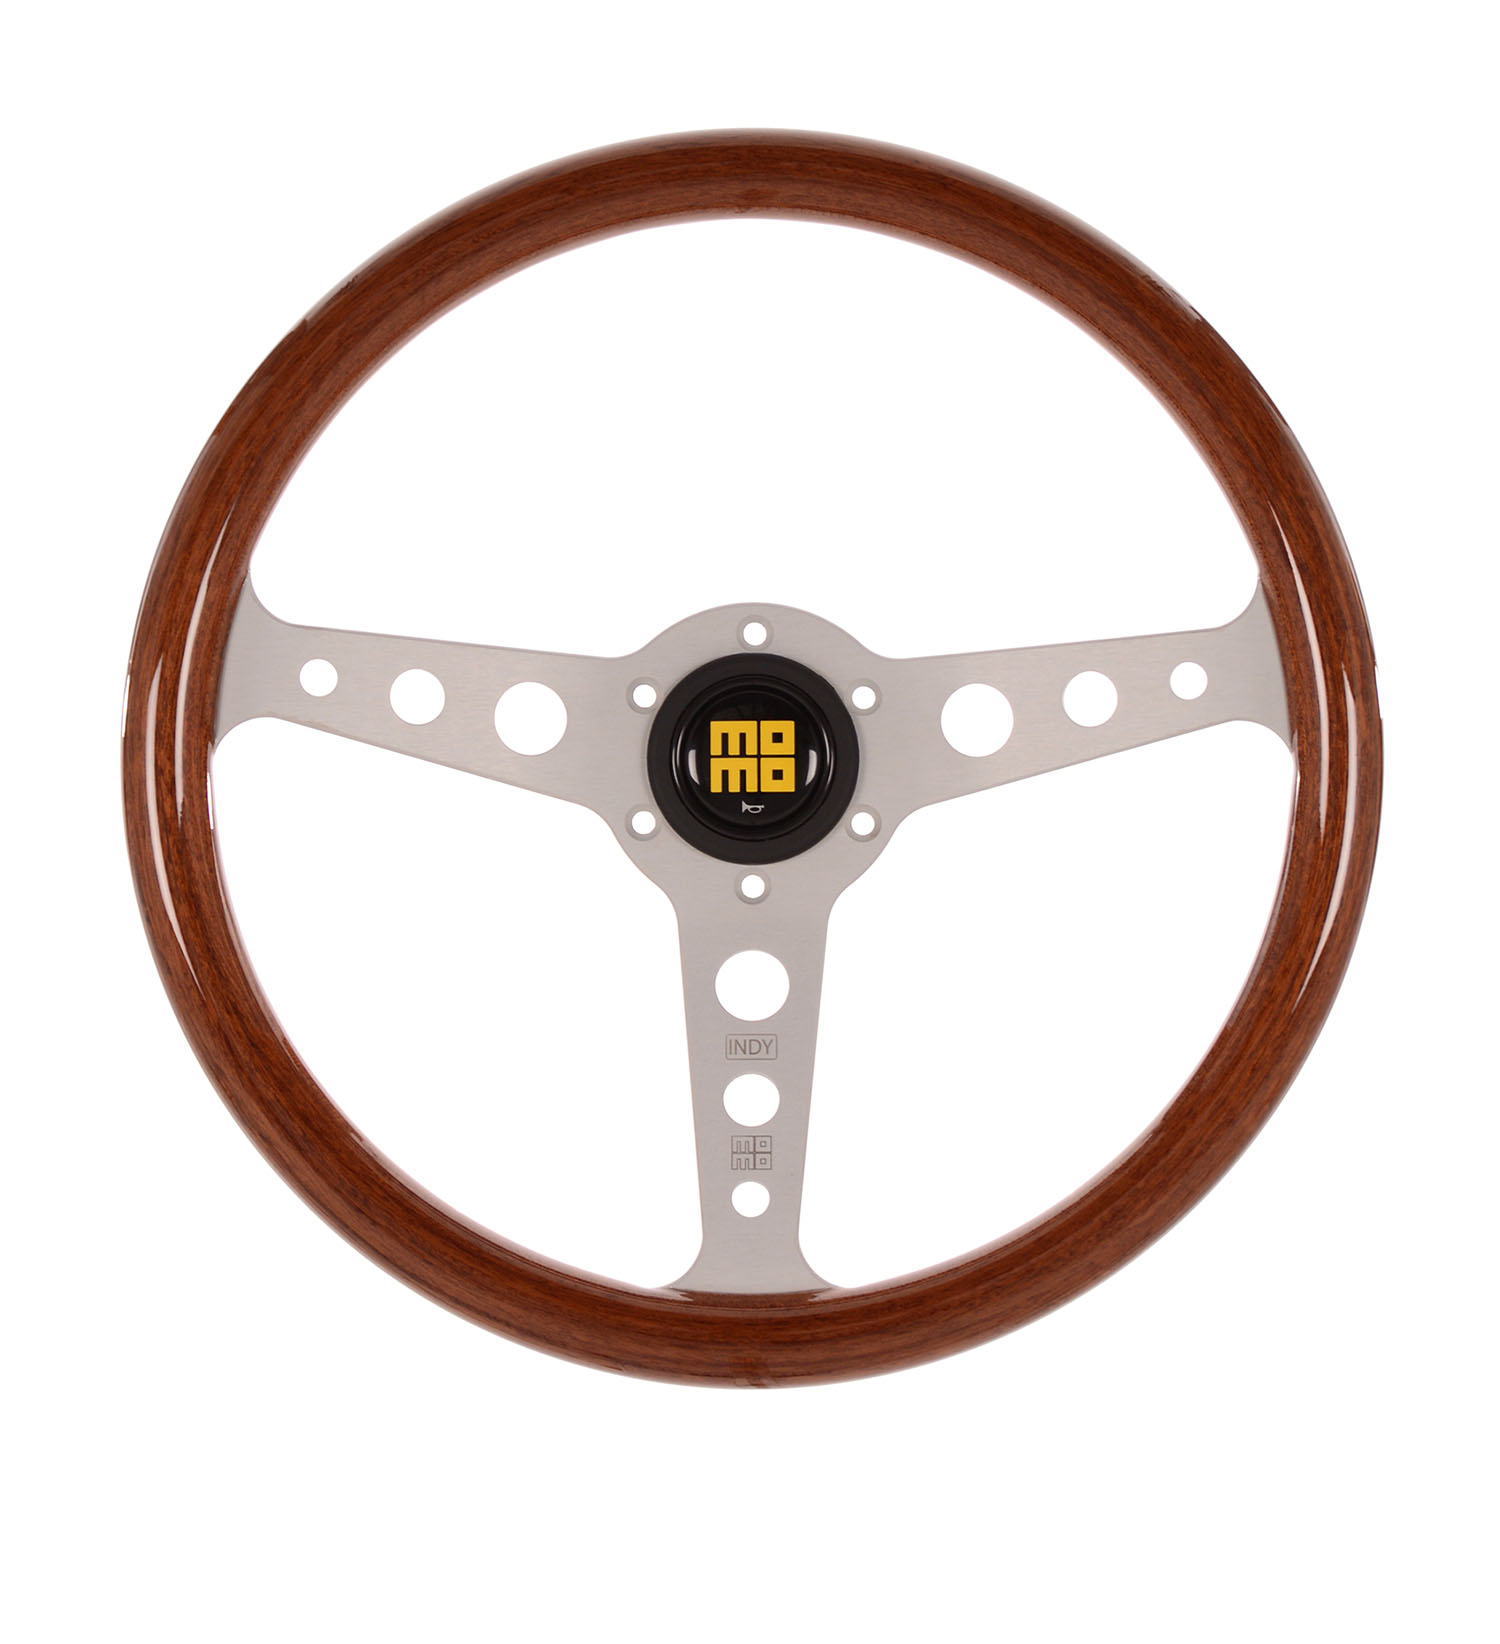 MOMO Steering Wheel Indy Hertiage Mahogany Wood